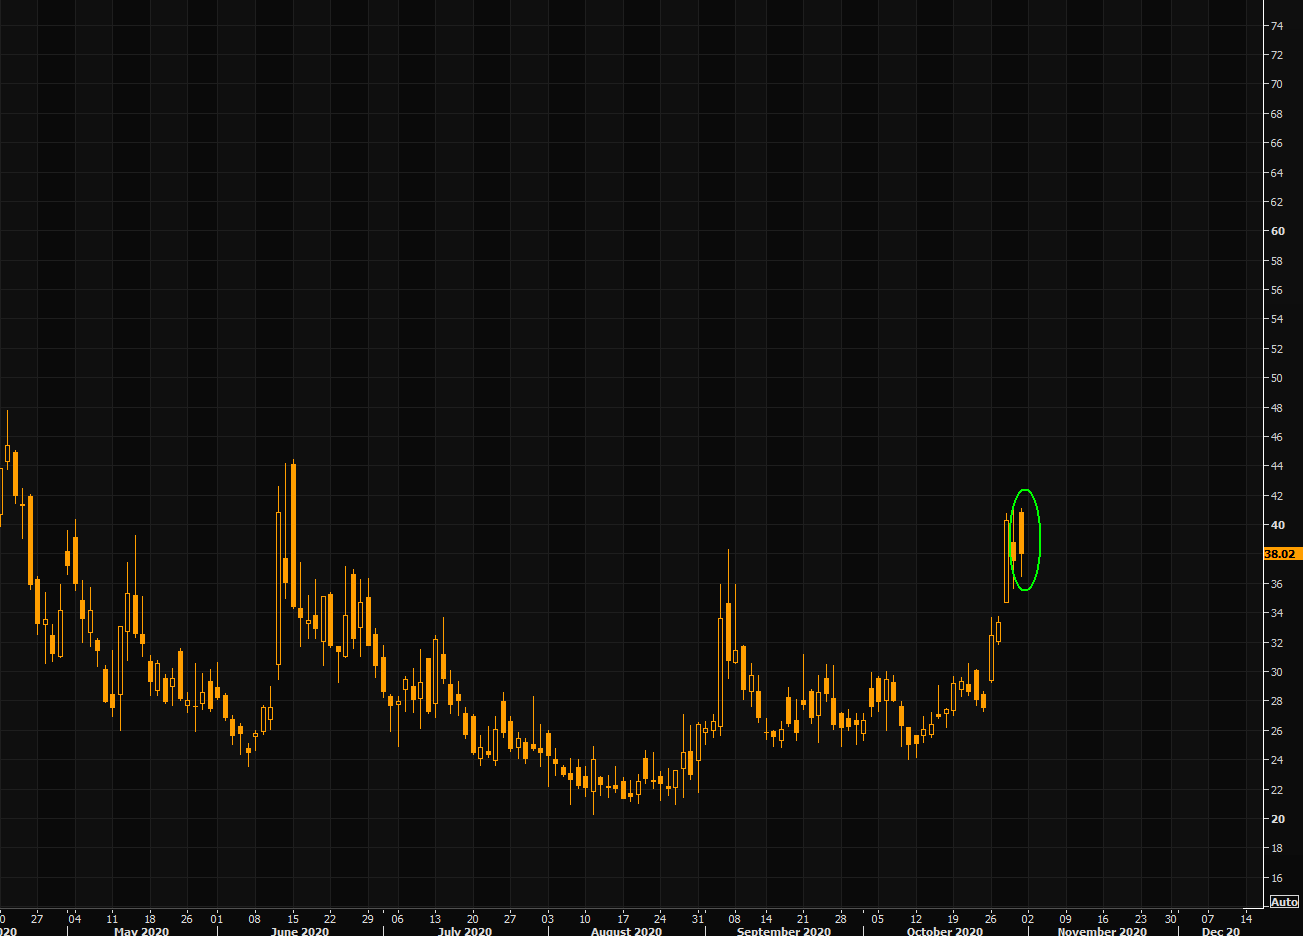 VIX - today was the biggest negative candle in a long time